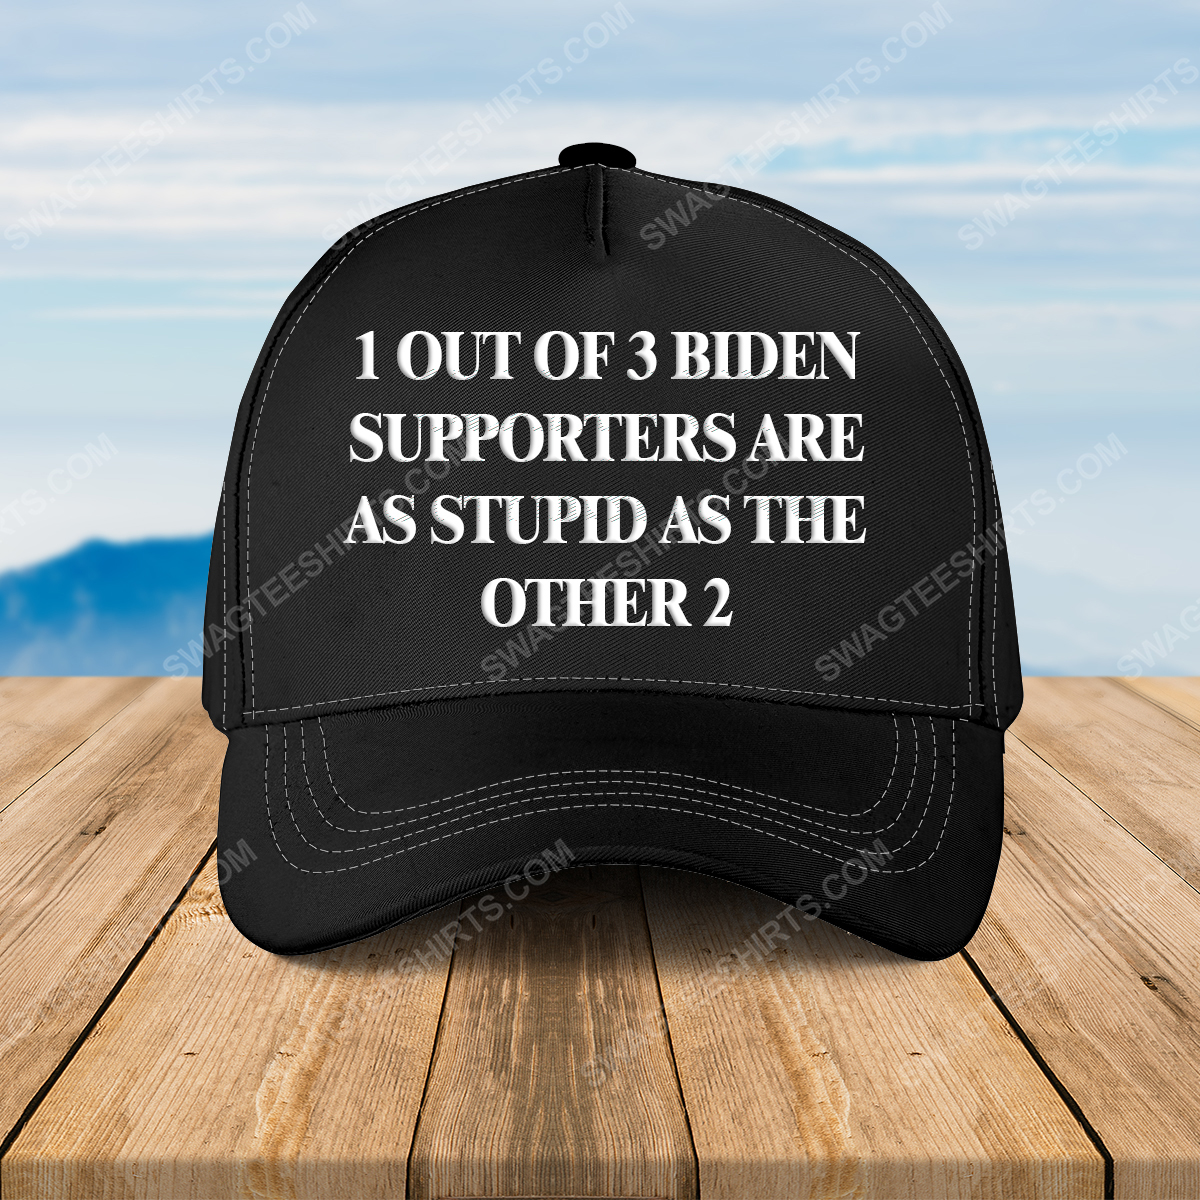 1 out of 3 biden supporters are as stupid as the other 2 full print classic hat 1 - Copy